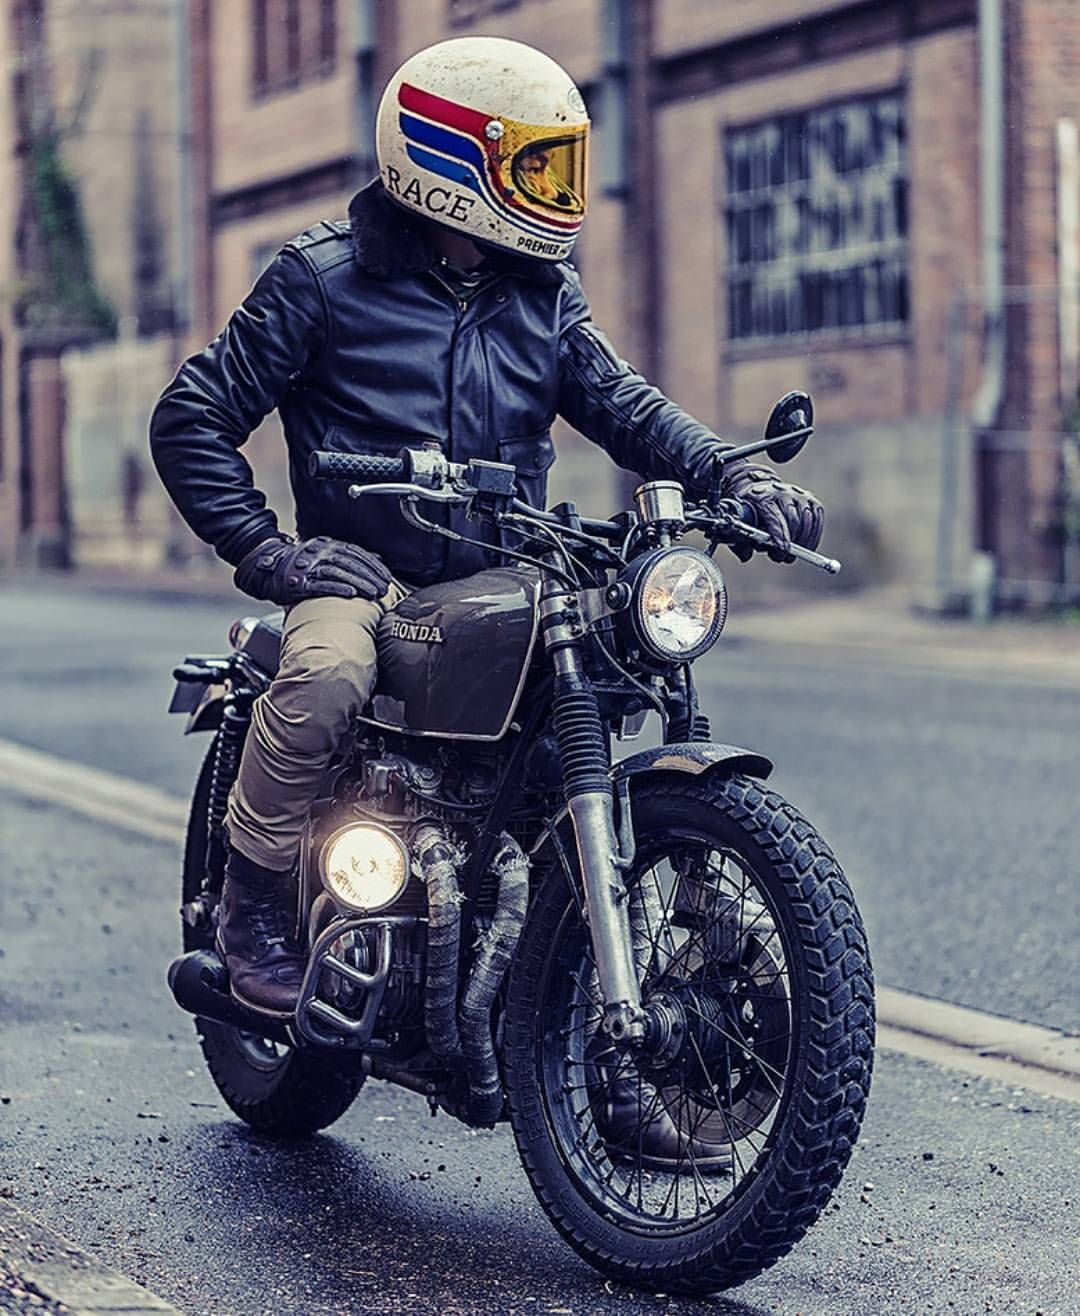 9 538 Likes 58 Comments Cafe Racers Customs Bikes Kaferacers On Instagram We Are Loving This Build From Roa Motorcycles クラシックバイク レトロバイク ヘルメット ペイント